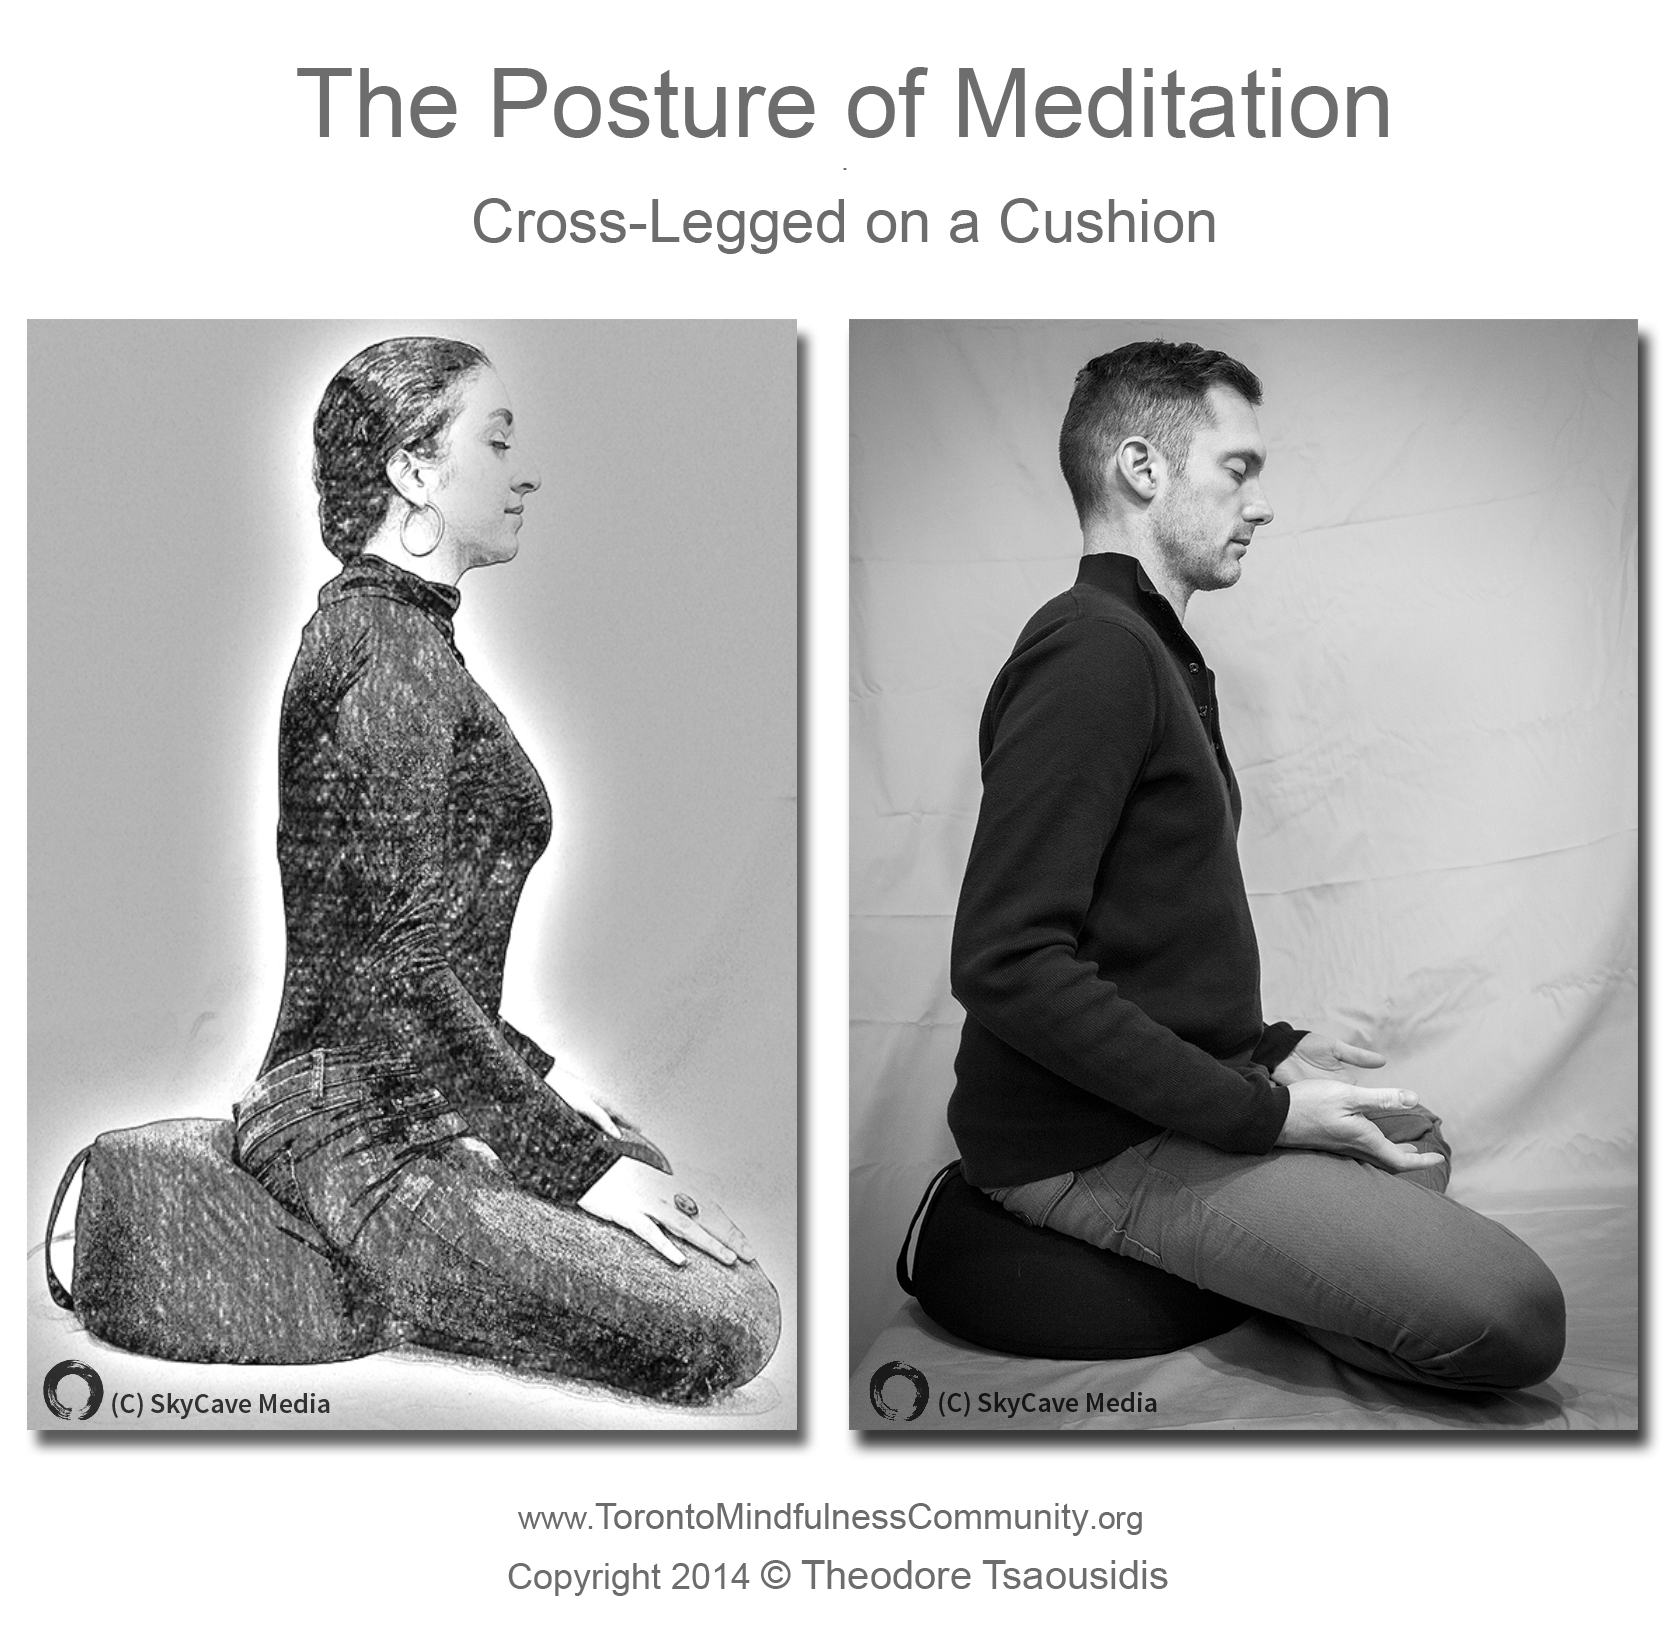 kneeling chair toronto office measurements the posture of meditation on a cushion